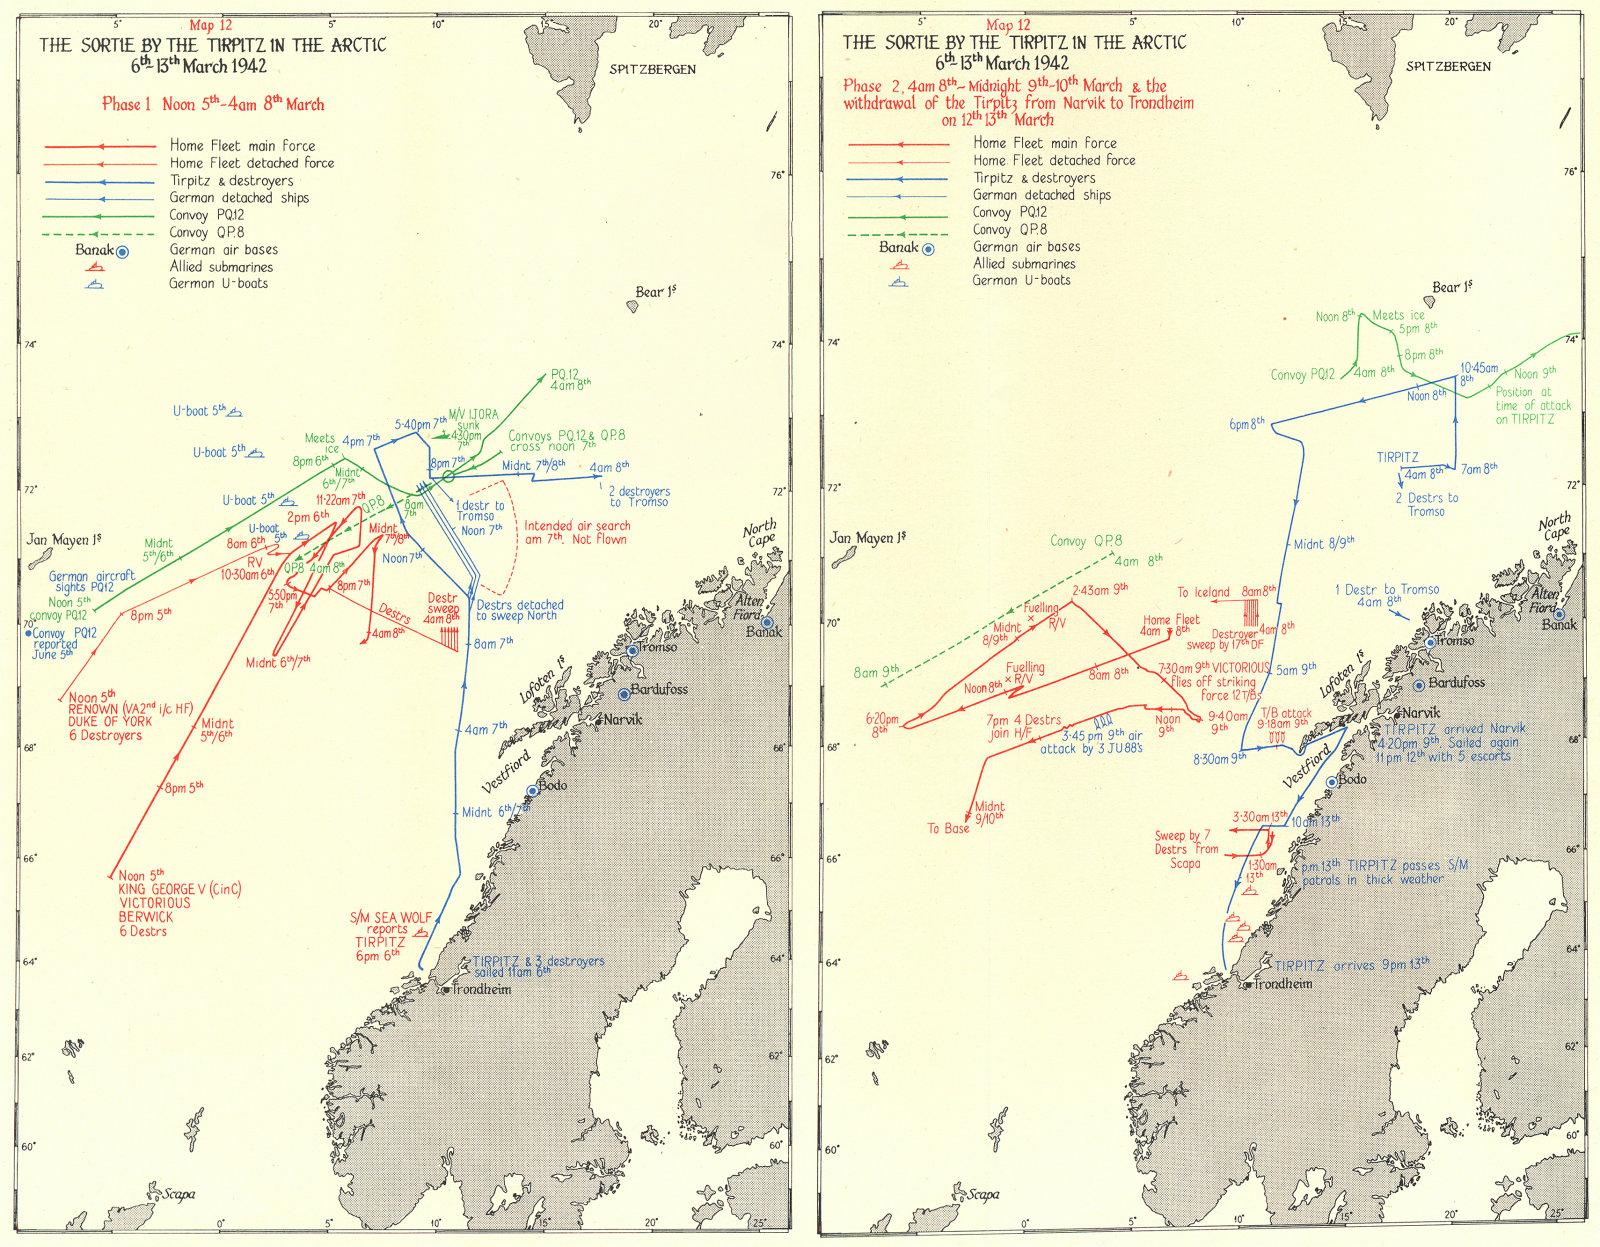 Associate Product ARCTIC. The sortie by the Tirpitz 6th-13th March 1942 1956 old vintage map